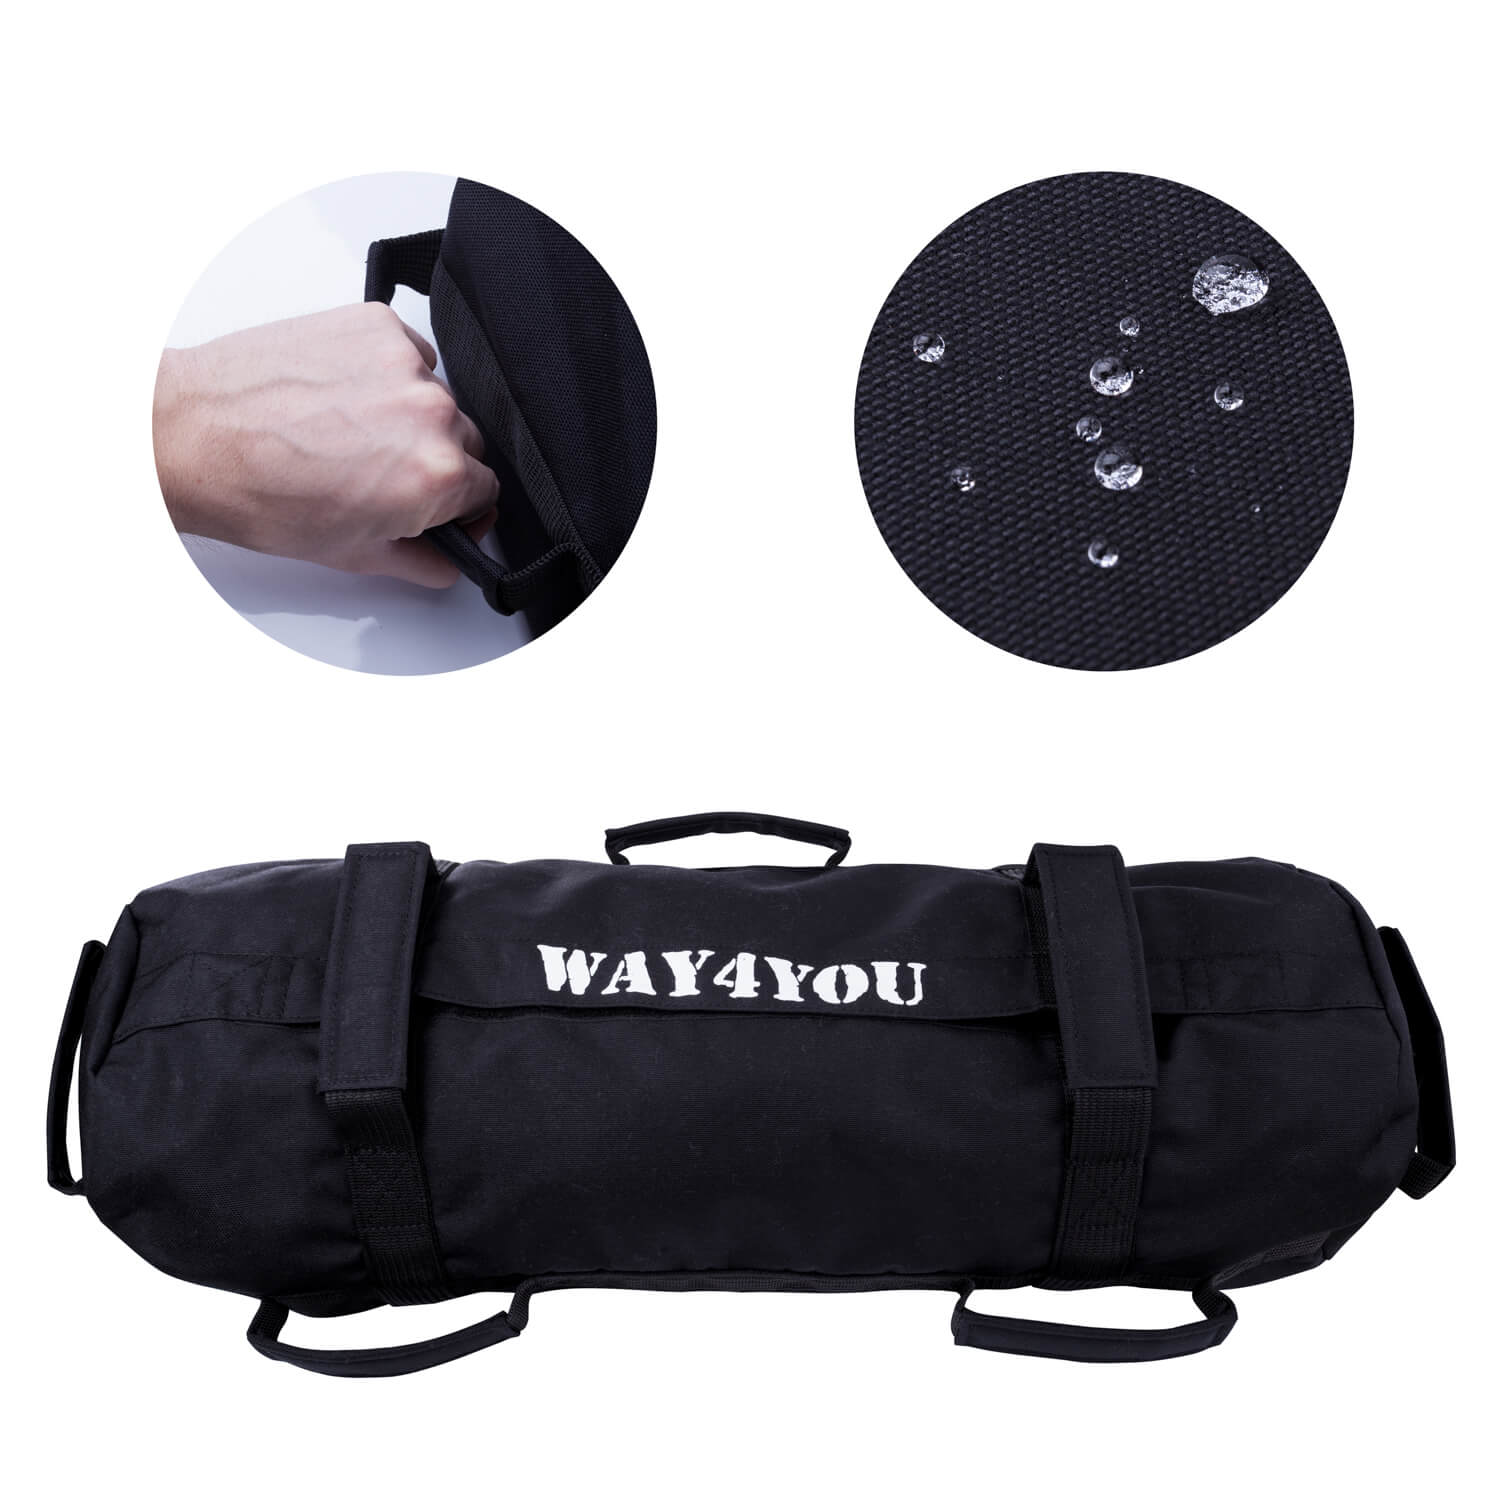 http://way4you.com.ua/images/upload/Sandbag-way4you.jpg